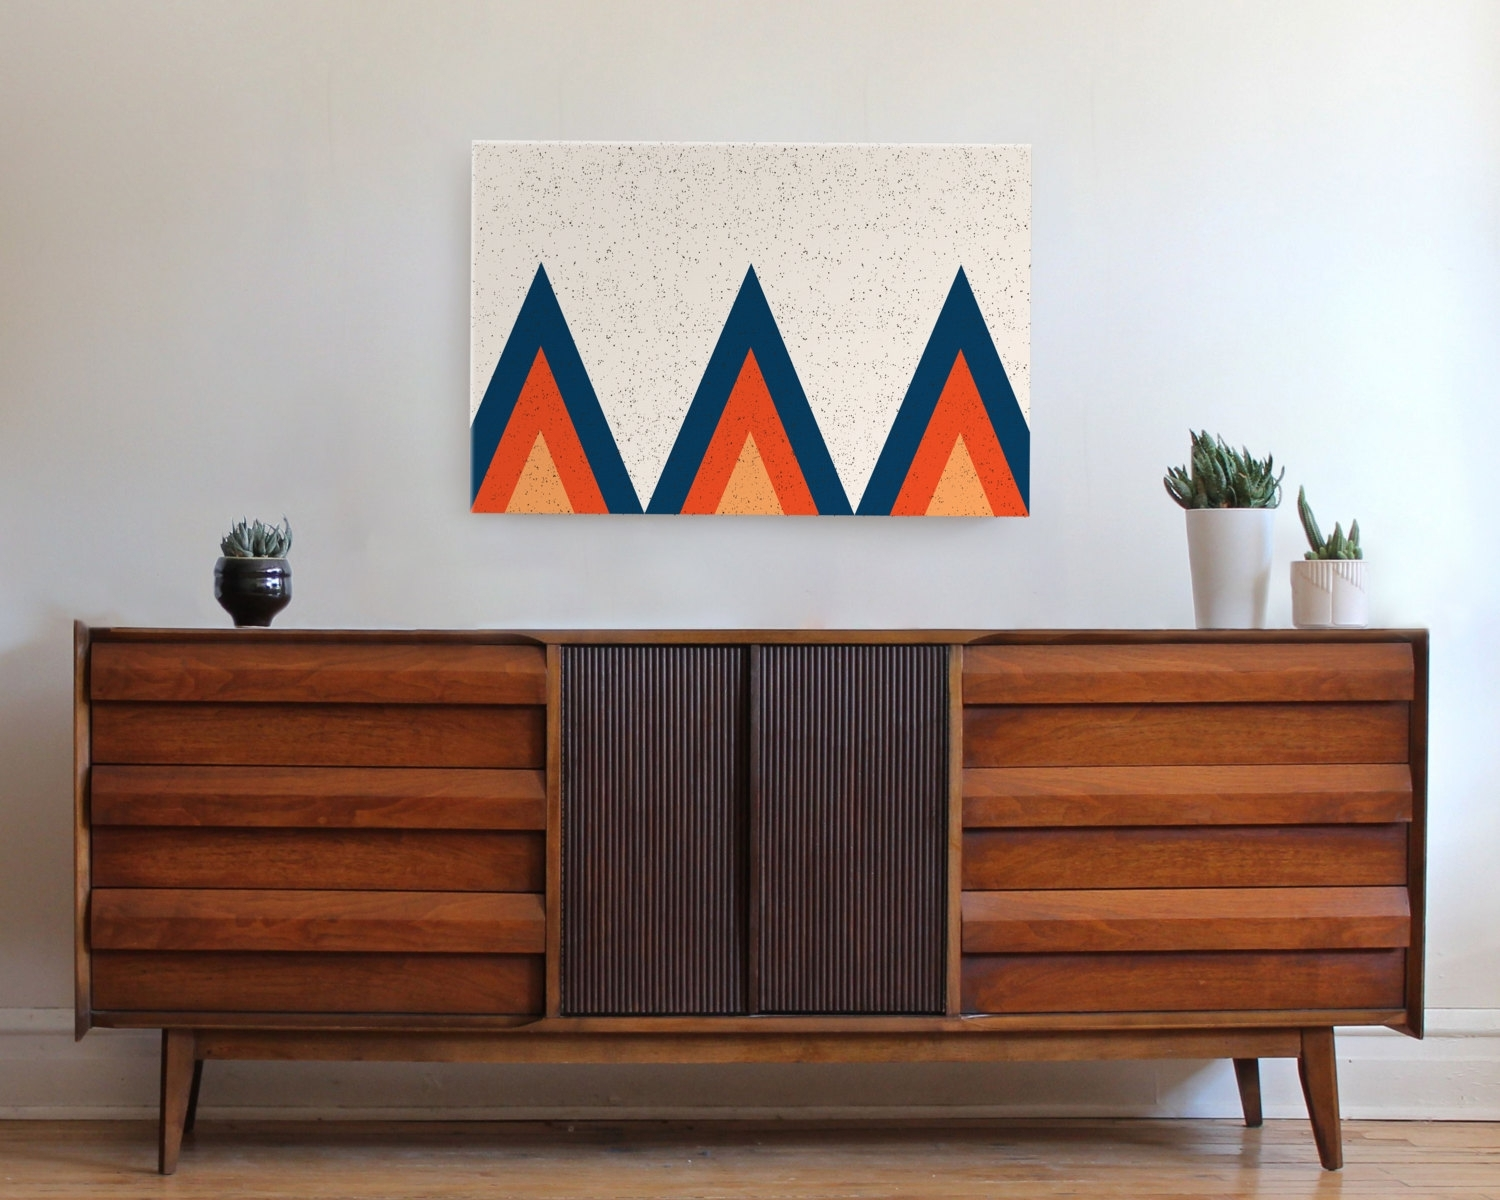 Best Mid Century Modern Wall Art : Andrews Living Arts - Photo regarding Mid Century Modern Wall Art (Image 3 of 20)